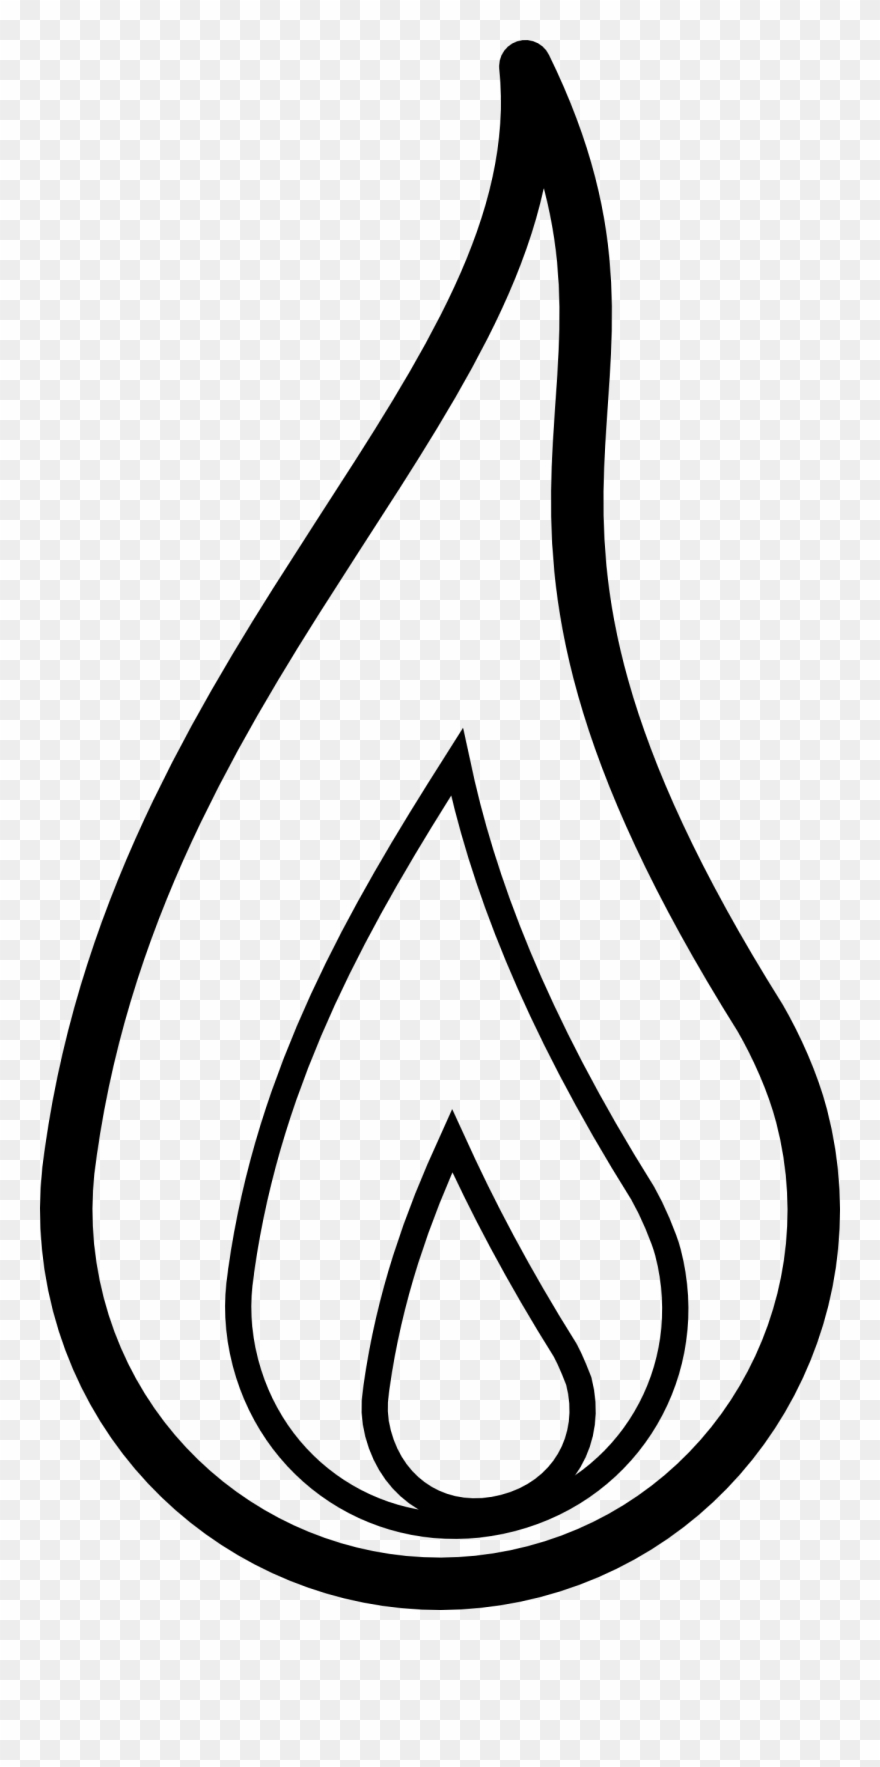 Fire Flames Clipart Black And White Free Clipart.